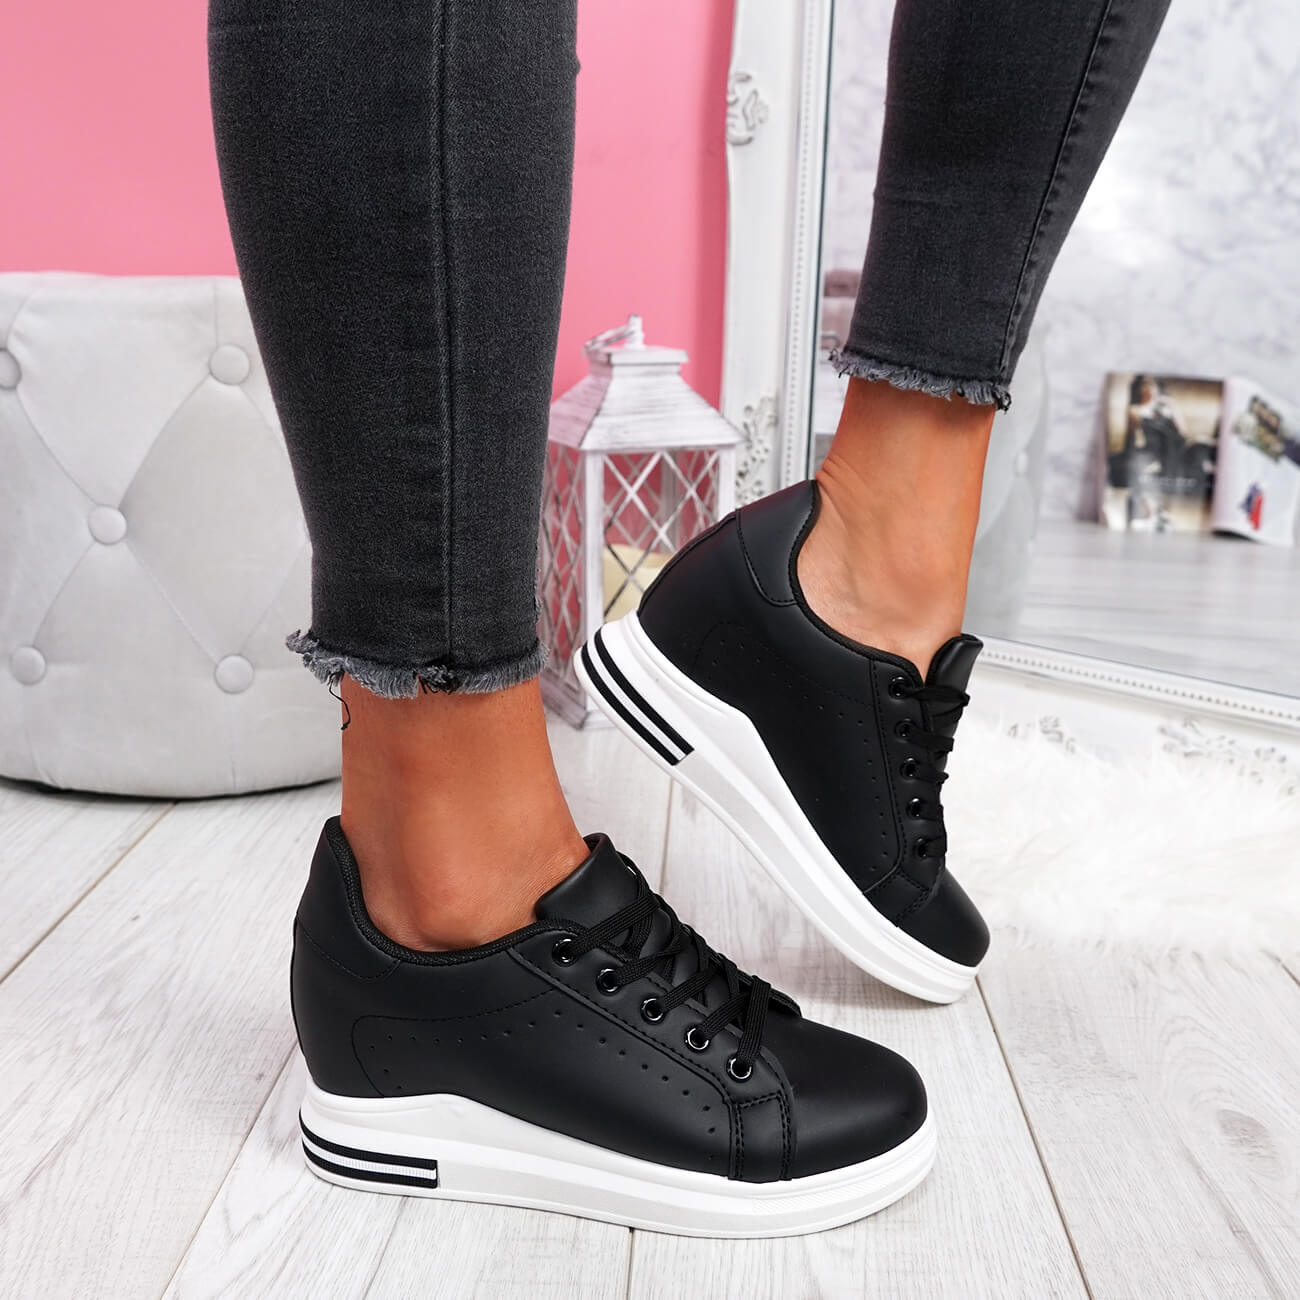 WOMENS-LADIES-LACE-UP-WEDGE-TRAINERS-HEEL-SNEAKERS-SHINY-PARTY-WOMEN-SHOES thumbnail 9